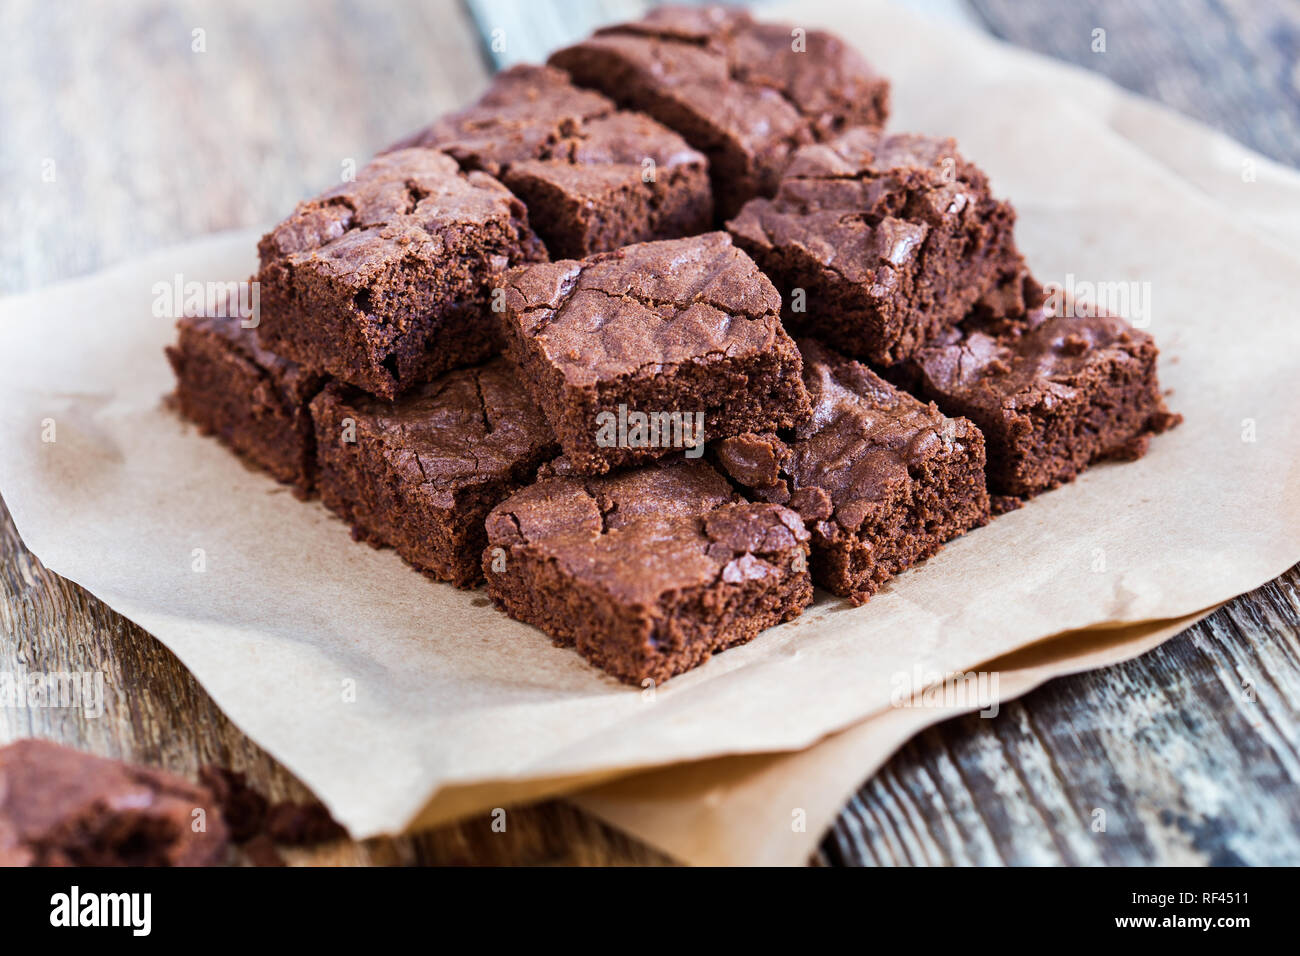 Pieces of freshly baked chocolate brownie on rustic wooden board, close-up, selective focus Stock Photo